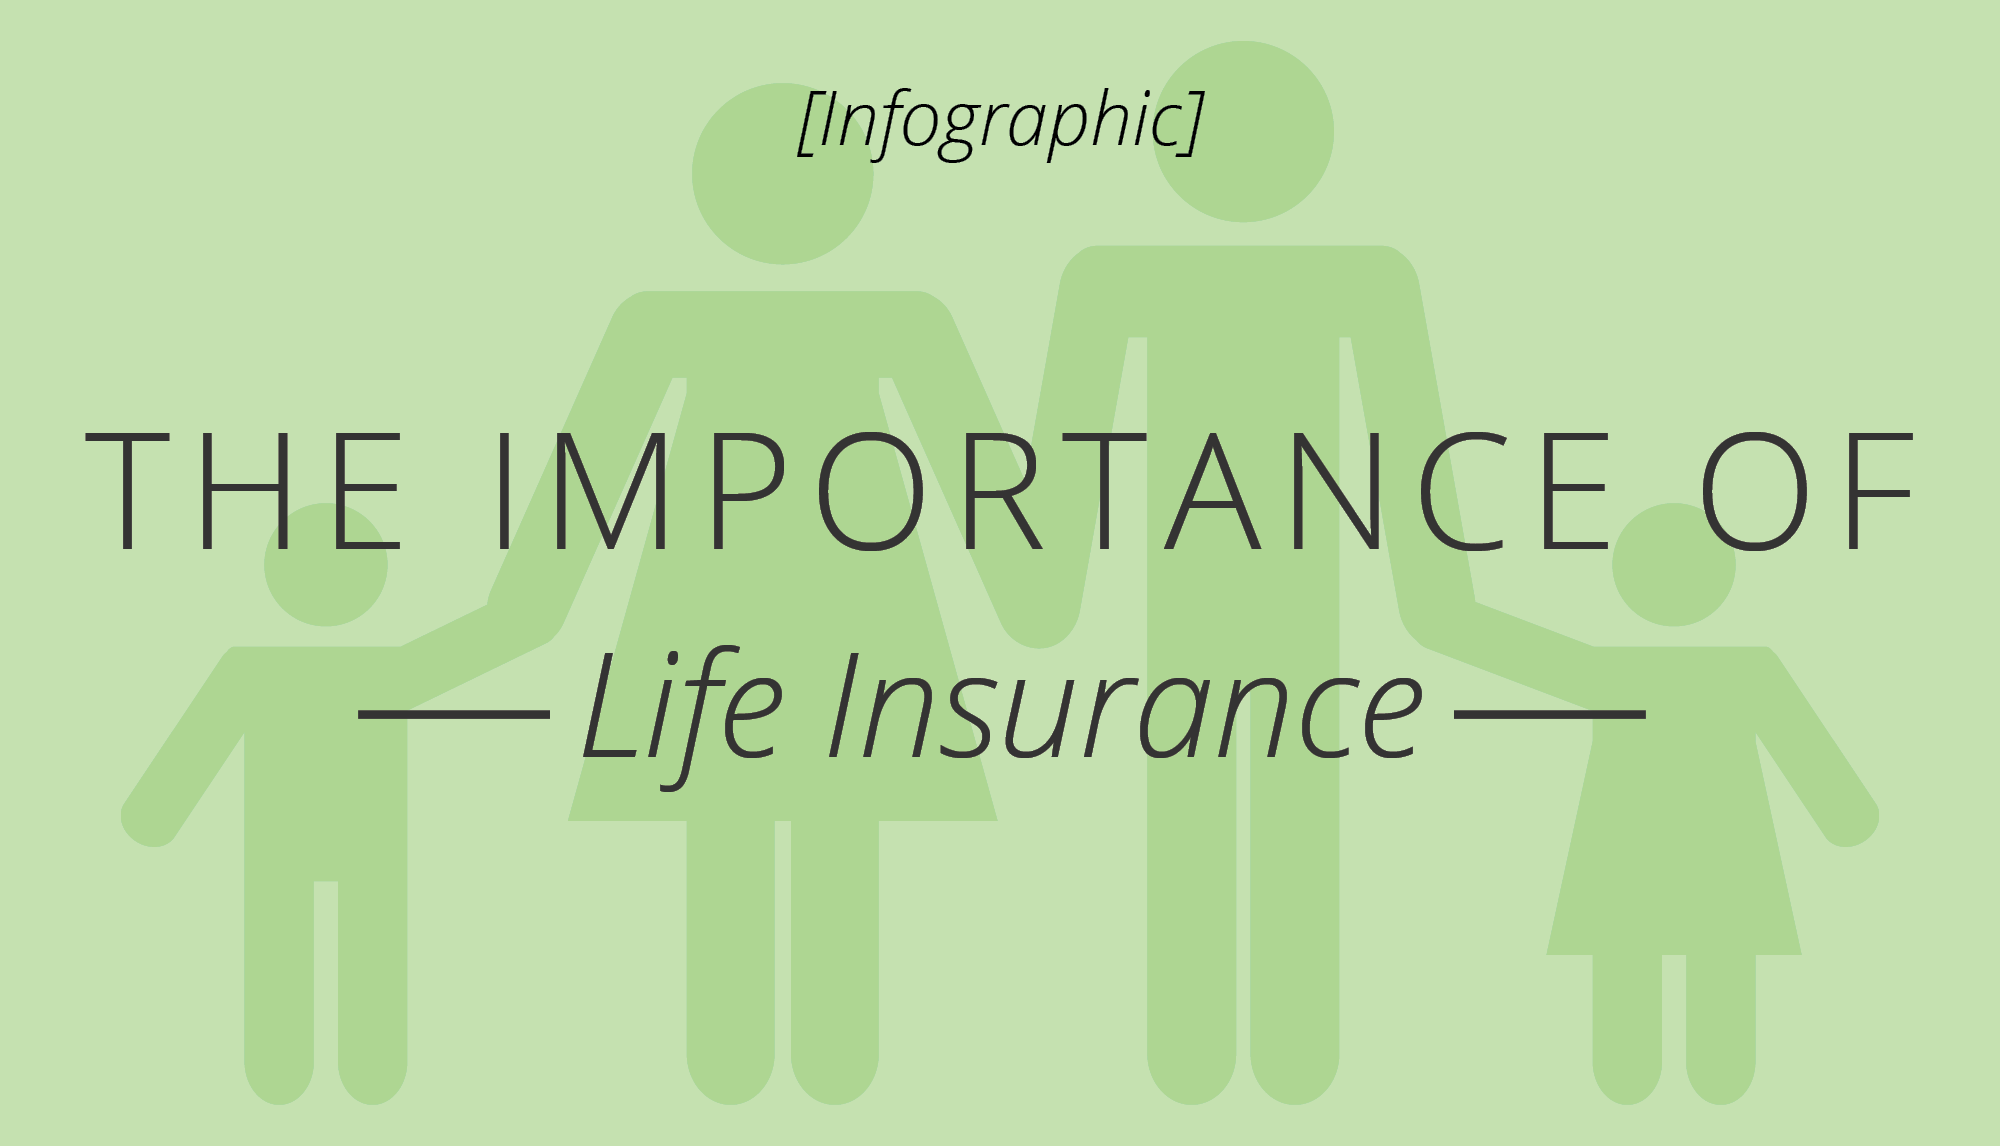 [Infographic] The Importance of Life Insurance